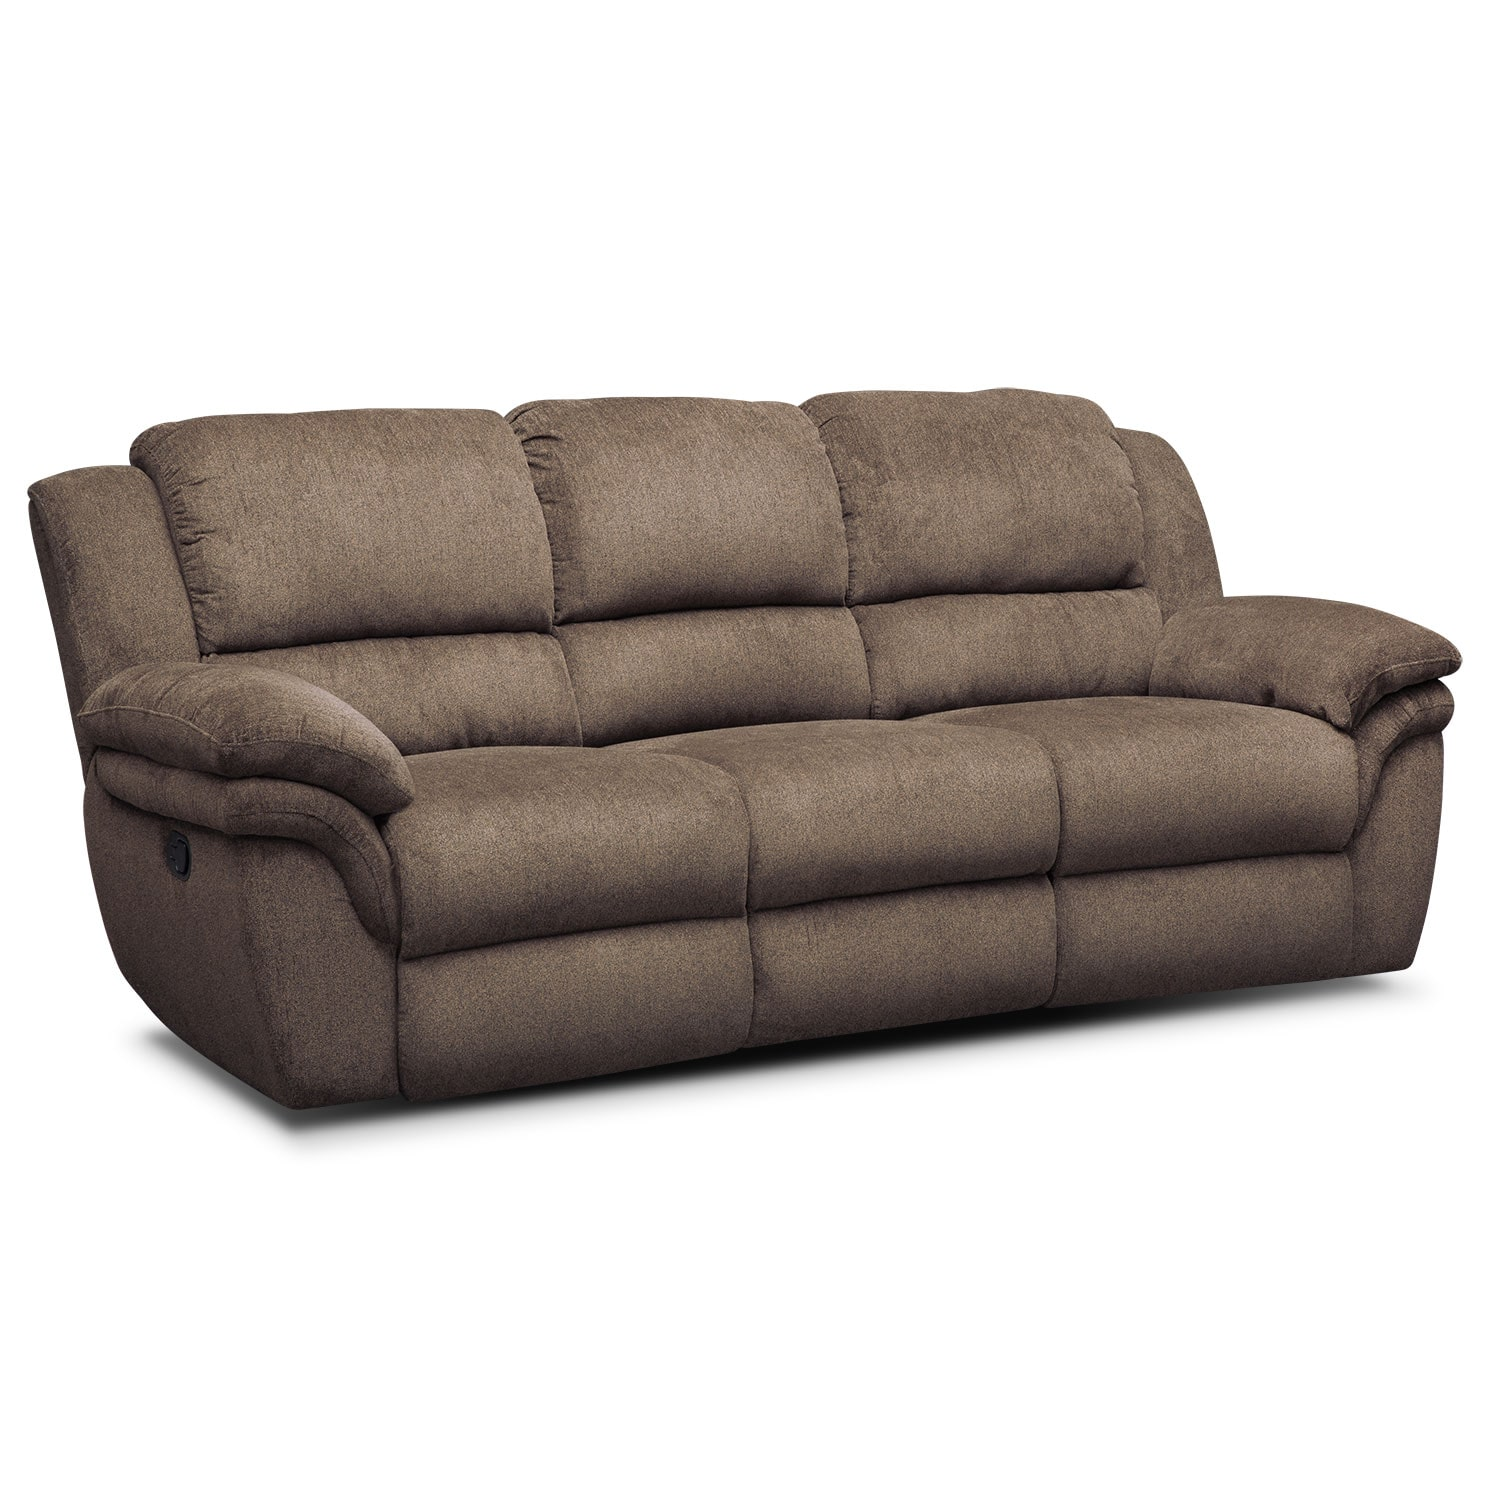 Aldo Manual Dual-Reclining Sofa Loveseat and Recliner Set - Mocha by Factory Outlet  sc 1 st  American Signature Furniture & Aldo Manual Dual-Reclining Sofa Loveseat and Recliner Set - Mocha ... islam-shia.org